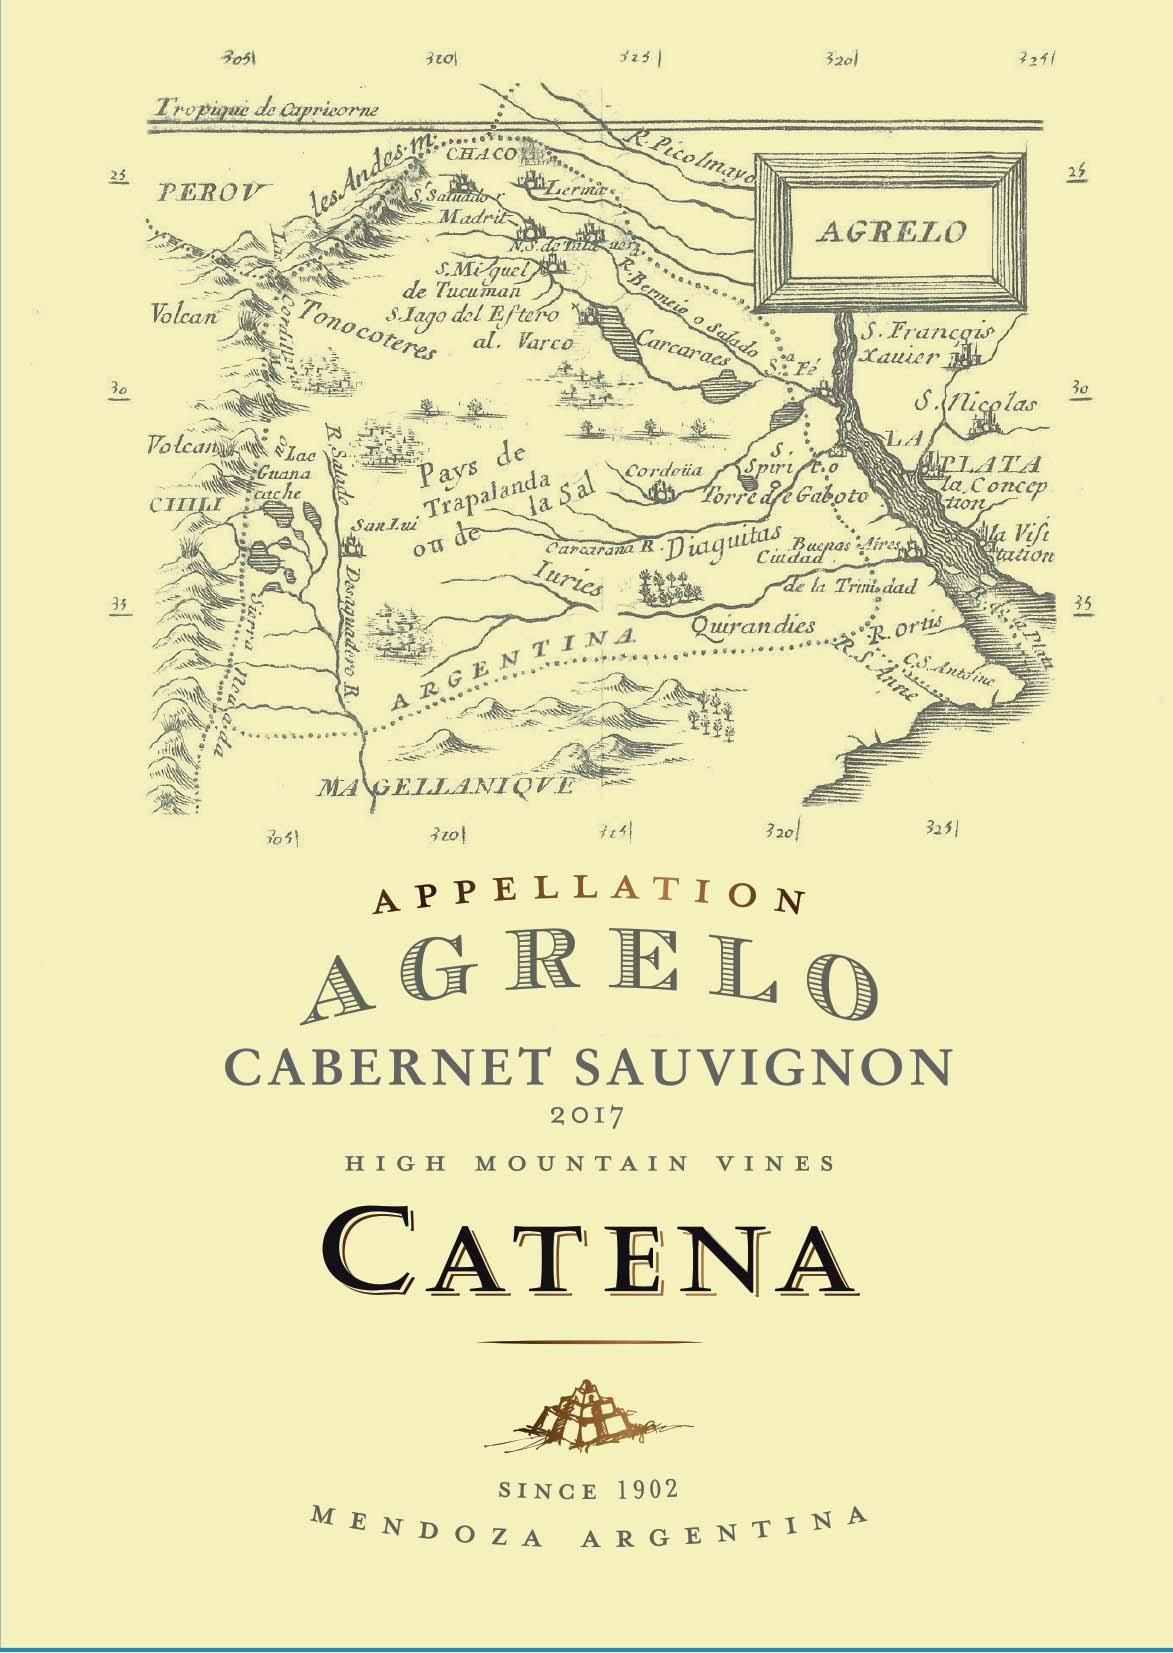 Catena Appellation Agrelo Cabernet Sauvignon 2017  Front Label